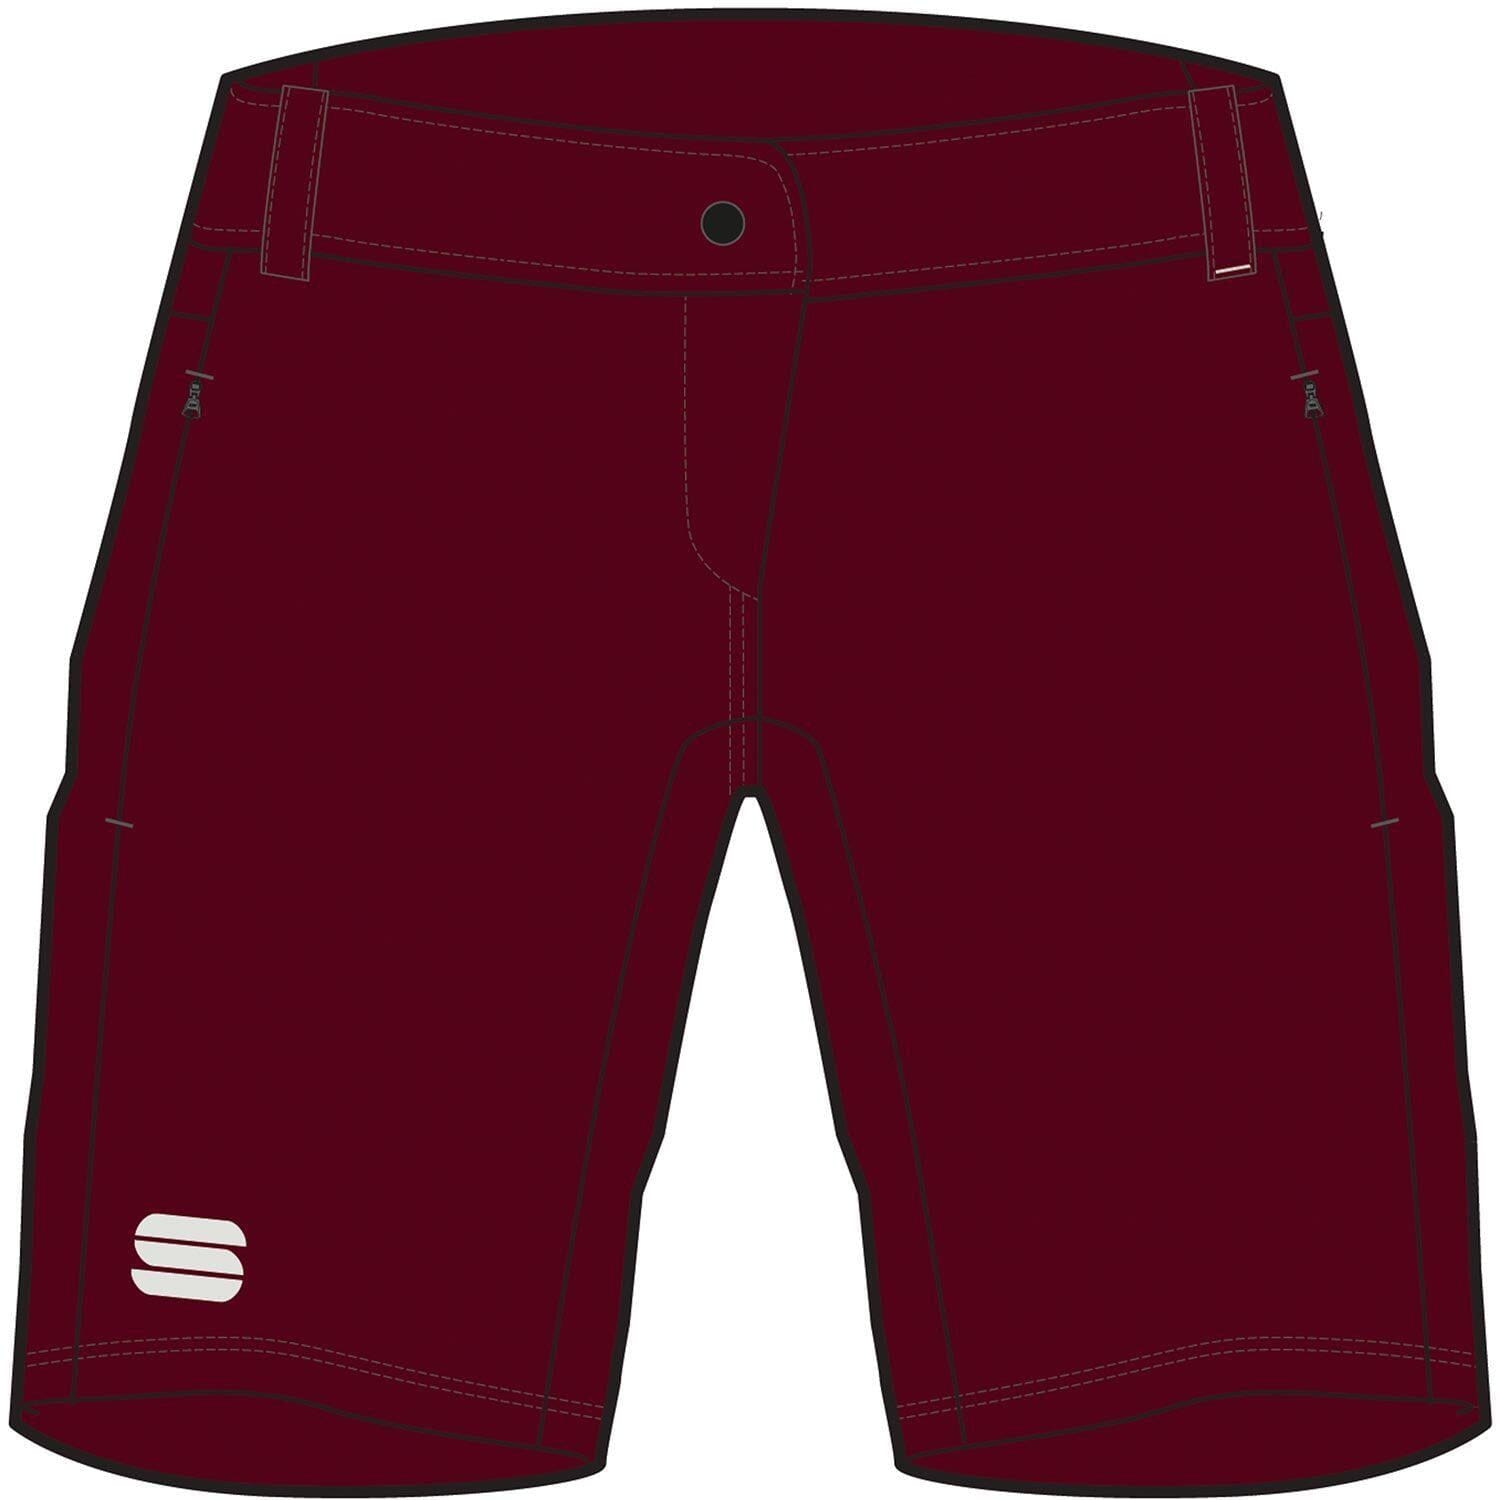 Sportful-Sportful Giara Women's Overshorts-Red Wine-XS-SF020256051-saddleback-elite-performance-cycling